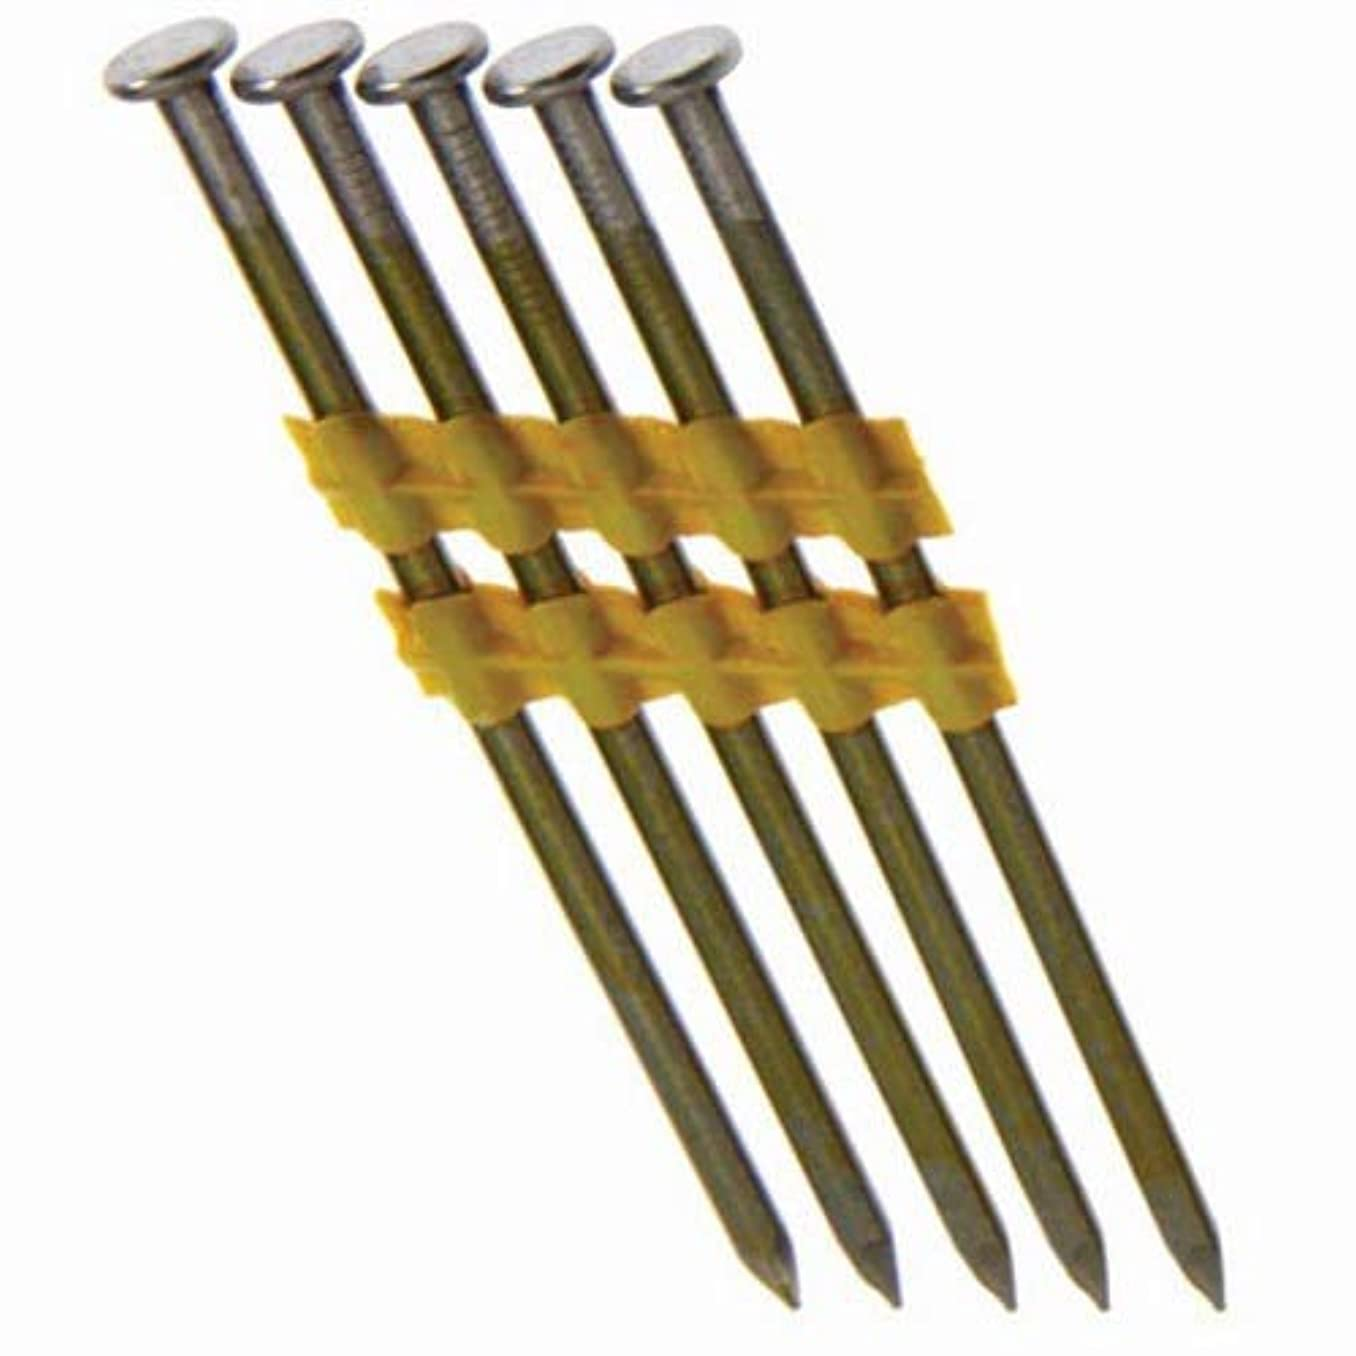 Grip Rite Prime Guard GR014L 21-deg Bright Plastic Strip Round Head Nails, Smooth 3-inch by .131 (4,000-pk), Steel